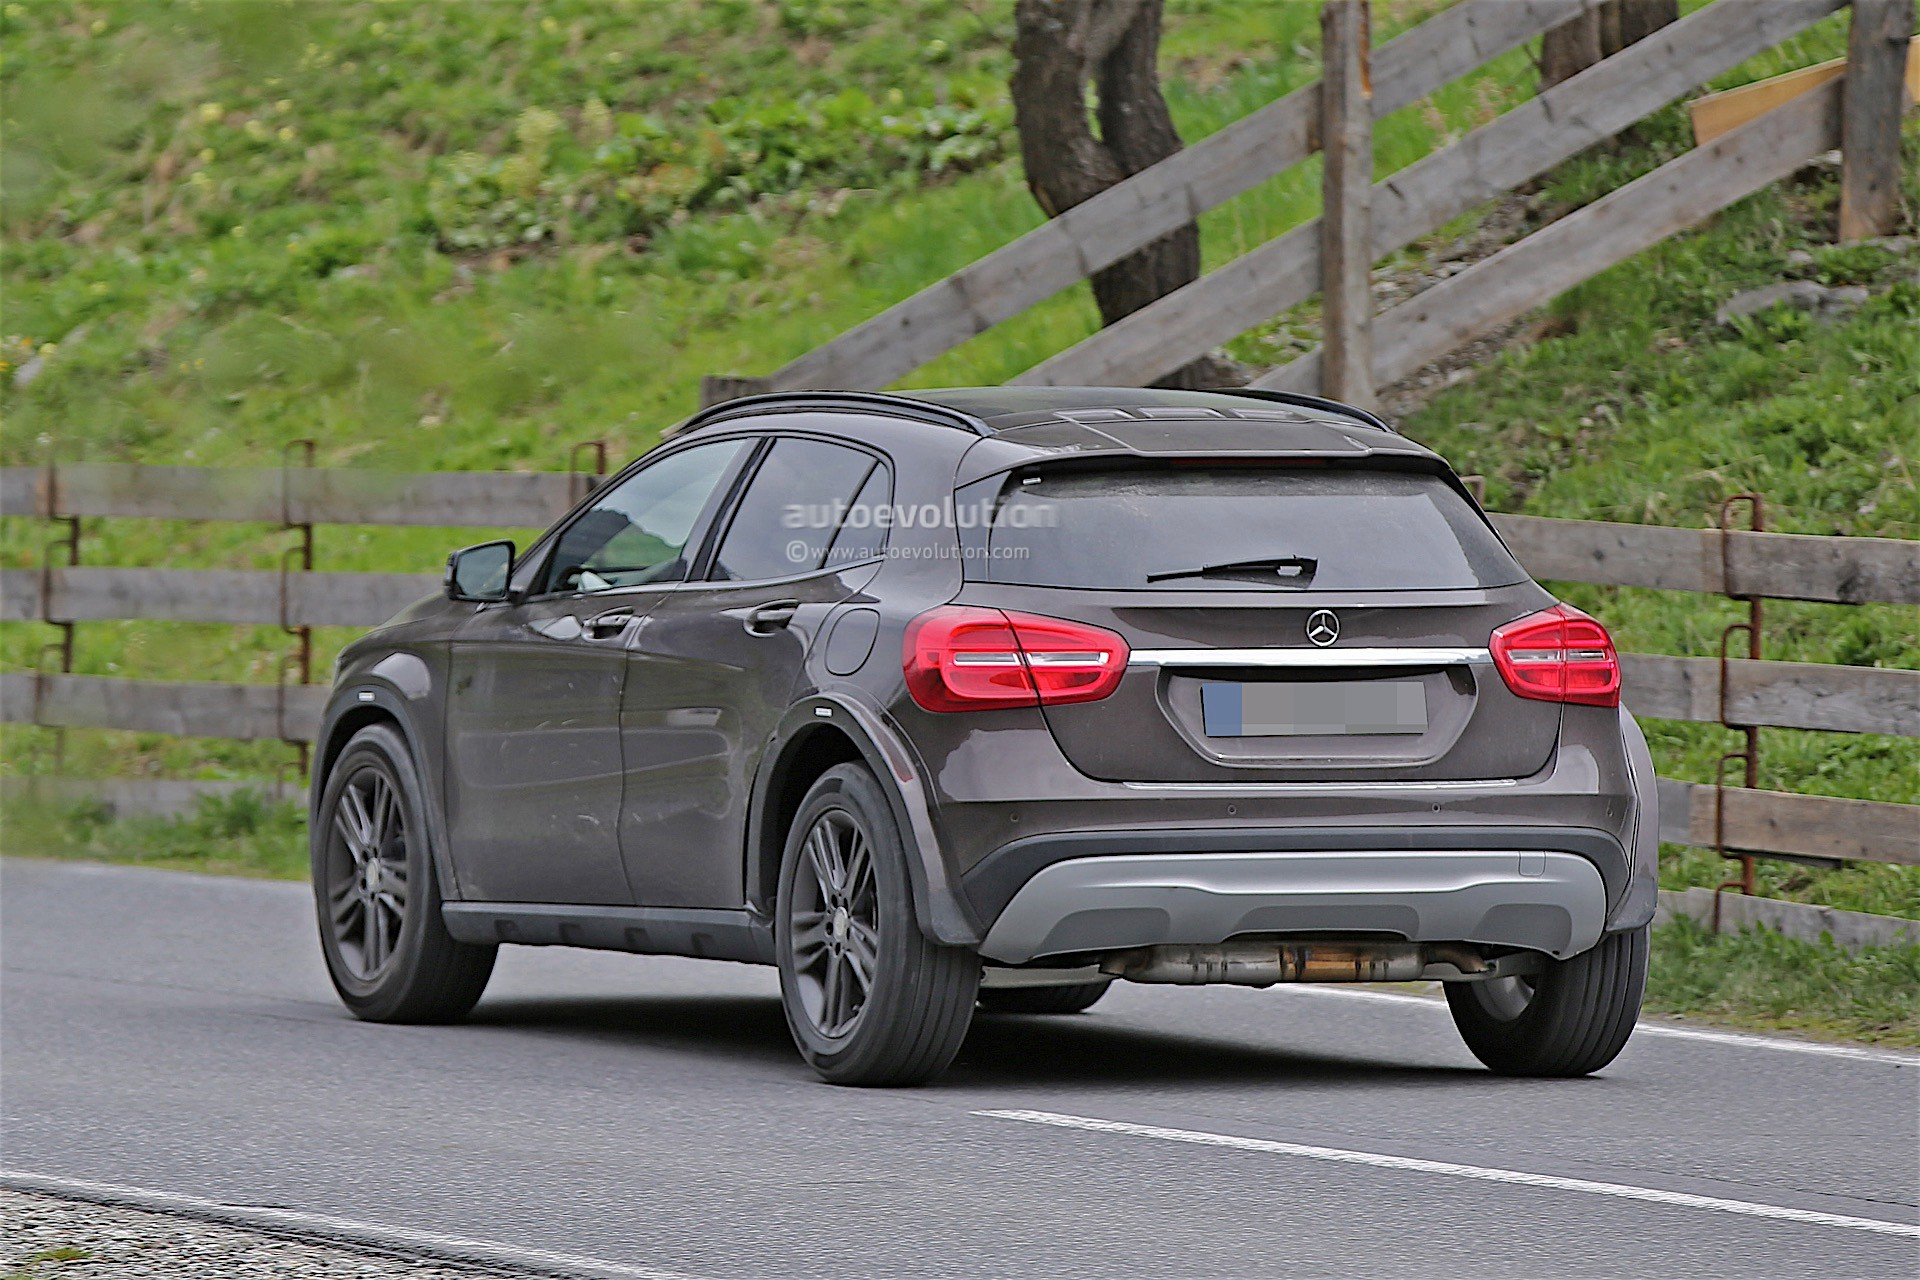 Audi Suv Models >> Mercedes-Benz Is Testing Upcoming GLB, Spyshots Reveal - autoevolution